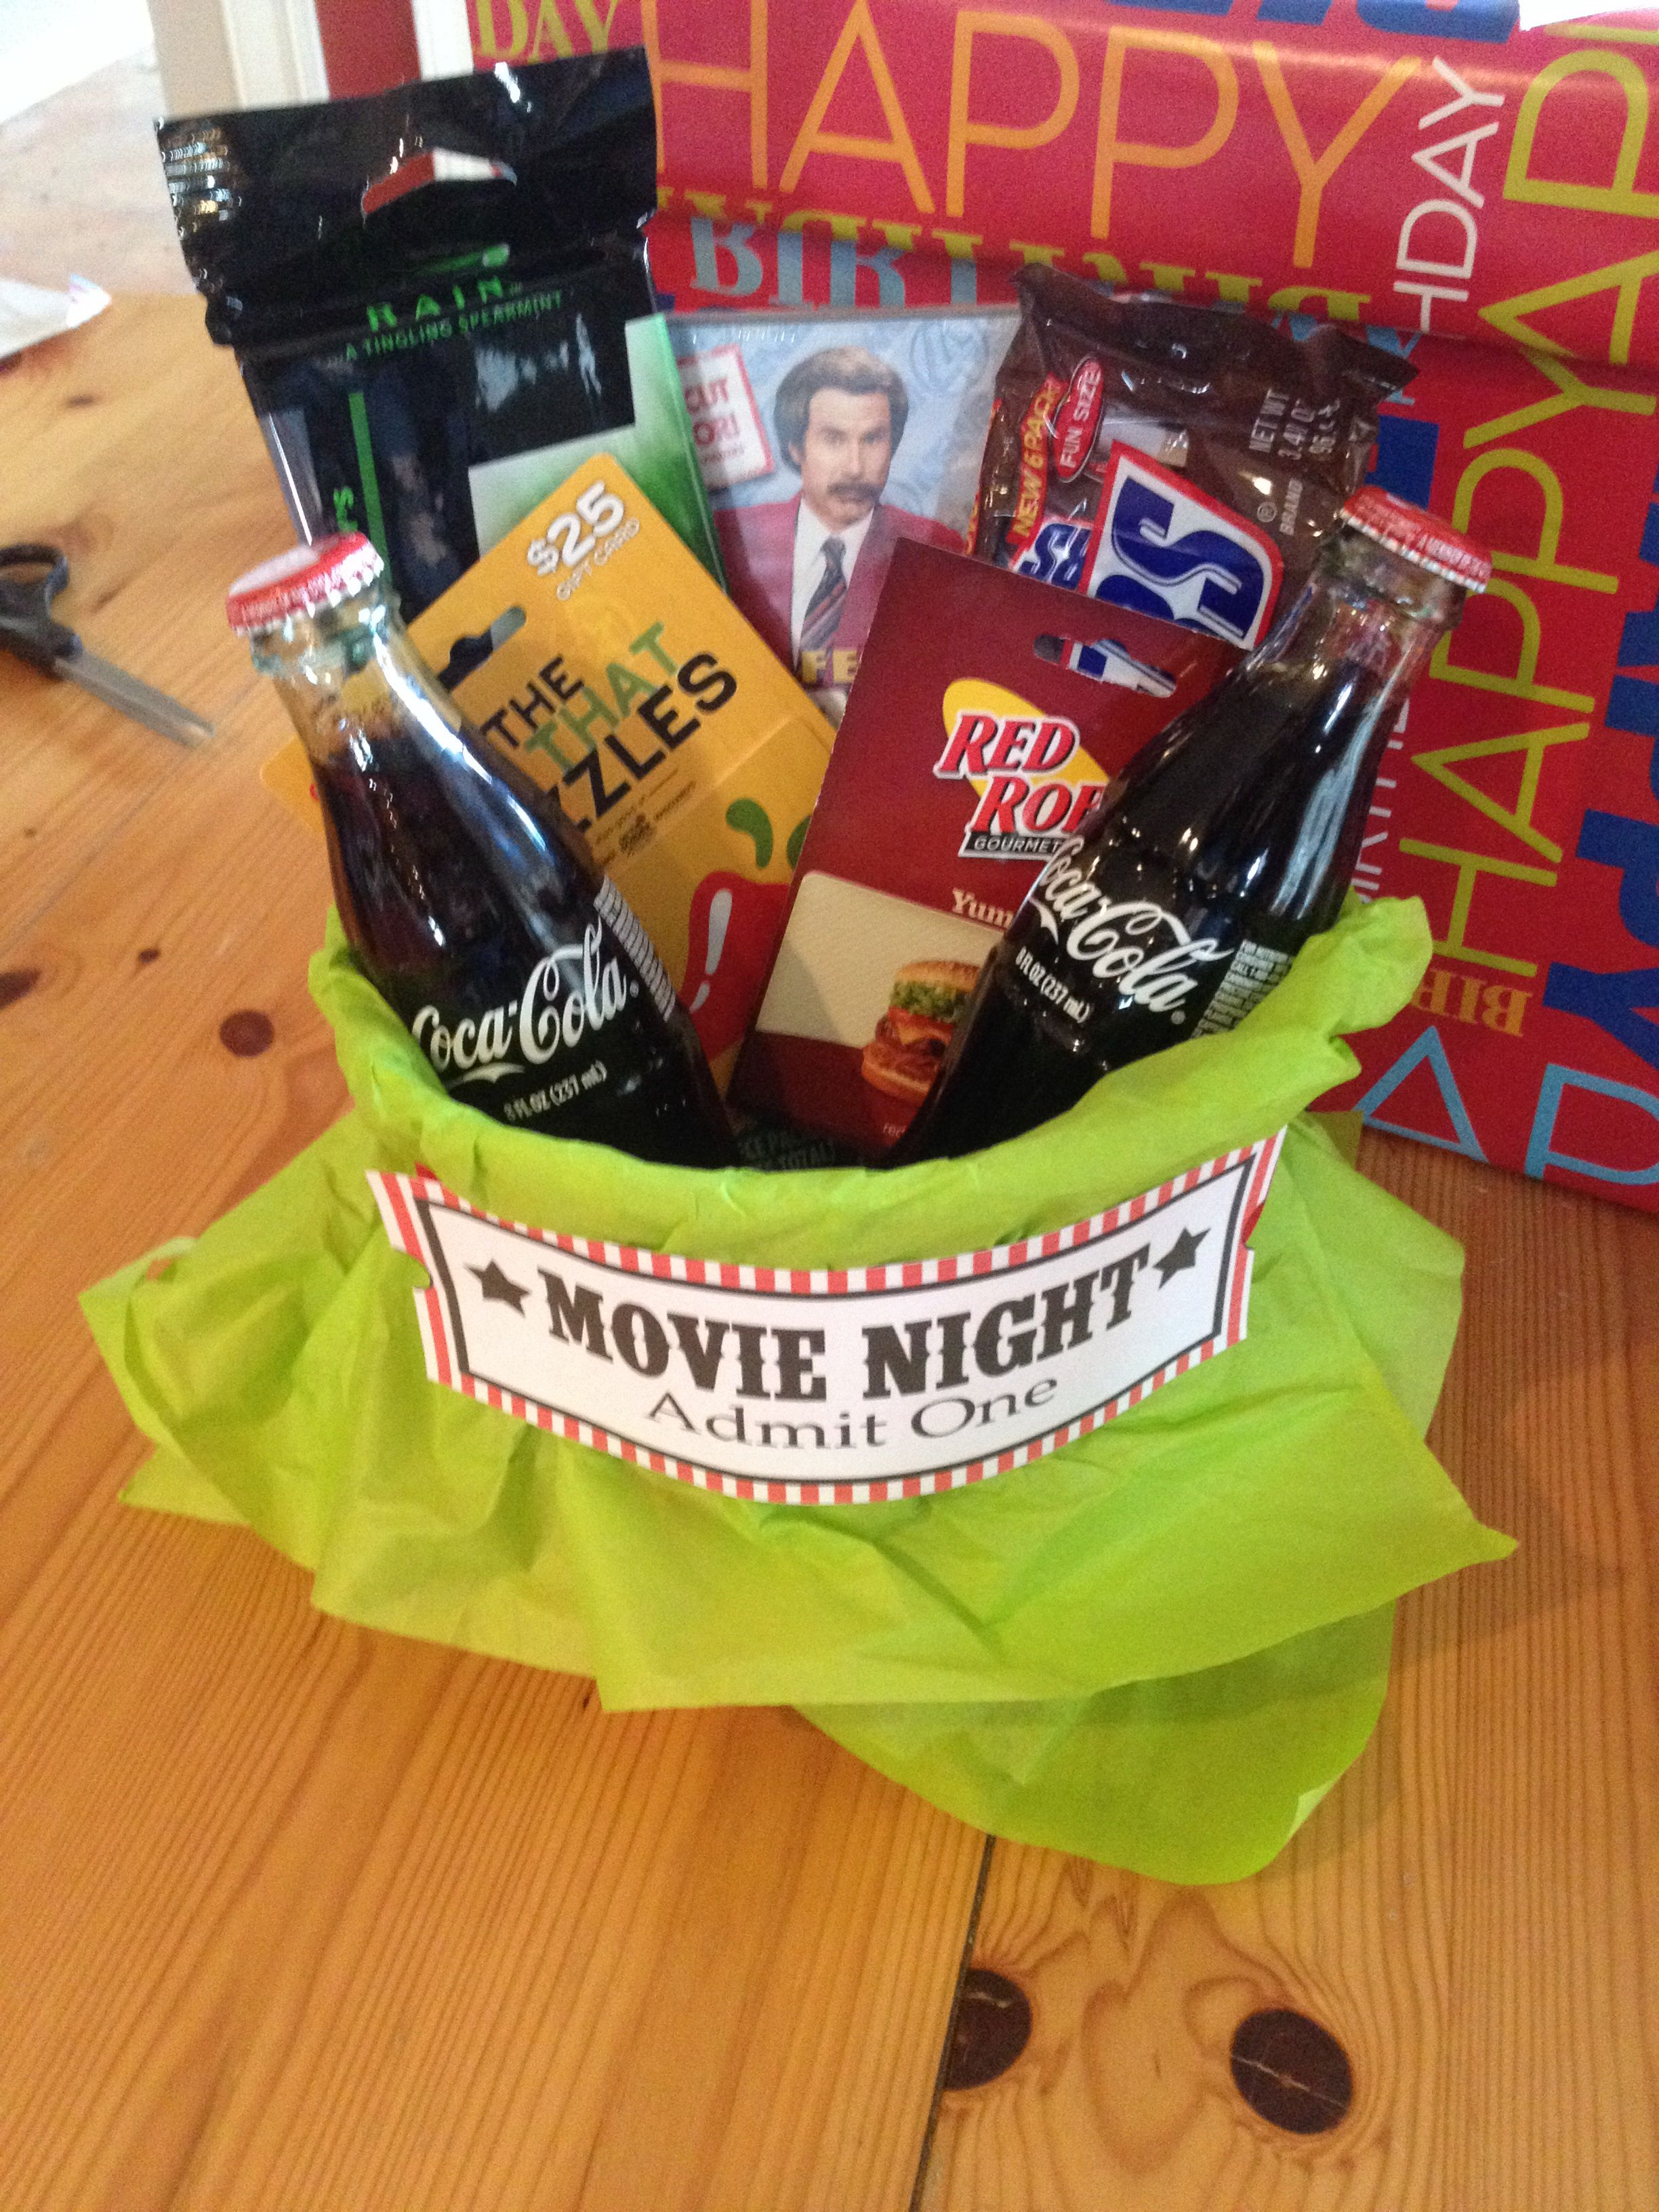 Birthday Gift Movie Restaurant And Theater Card Bucket Of Popcorn Bottled Coke Candy